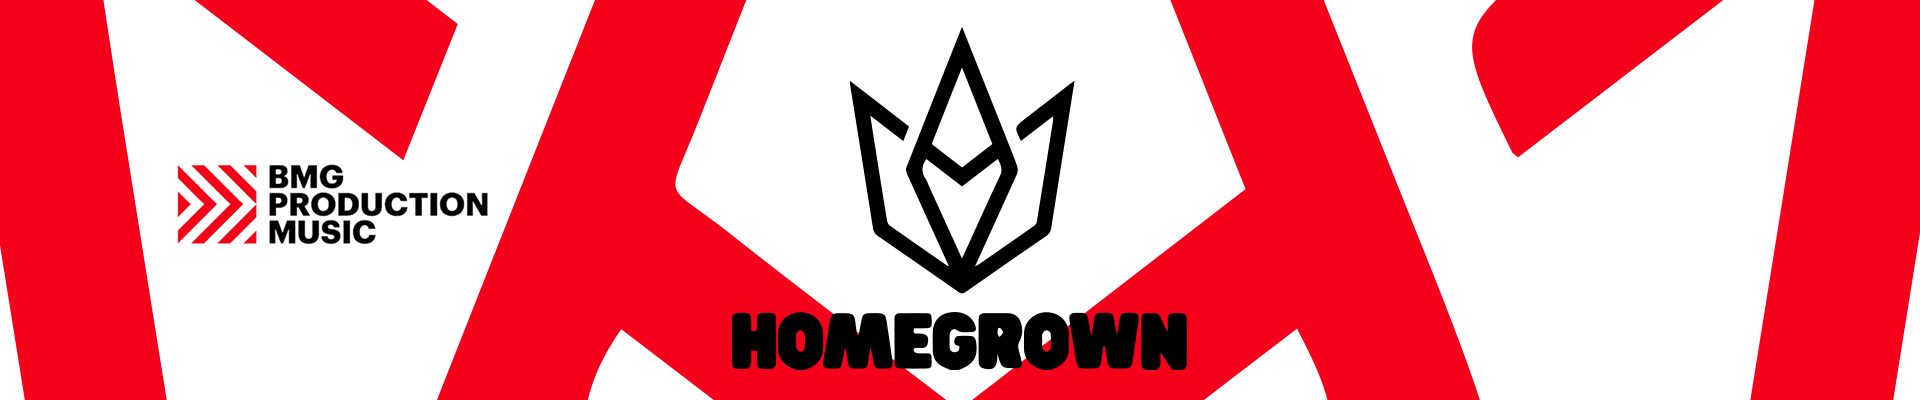 BMG Homegrown ROSH Studios